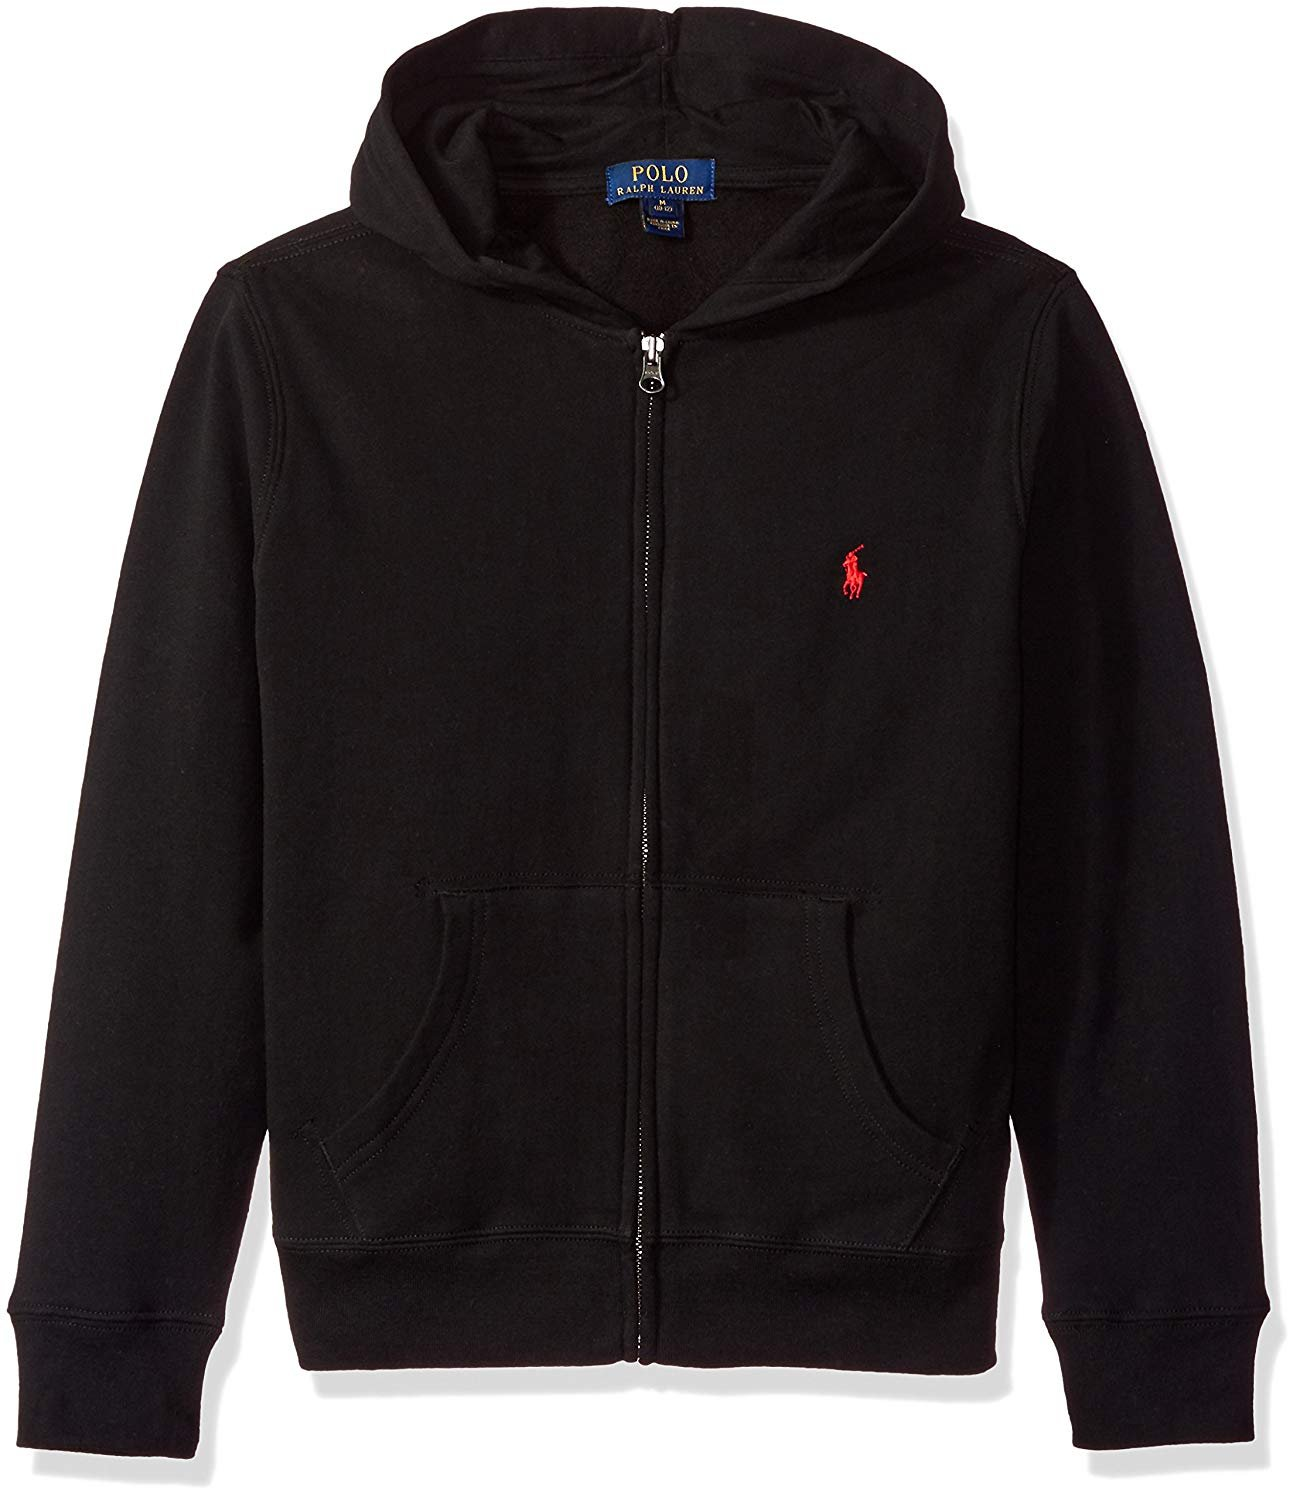 RALPH LAUREN Polo Boys Full Zip Hoodie